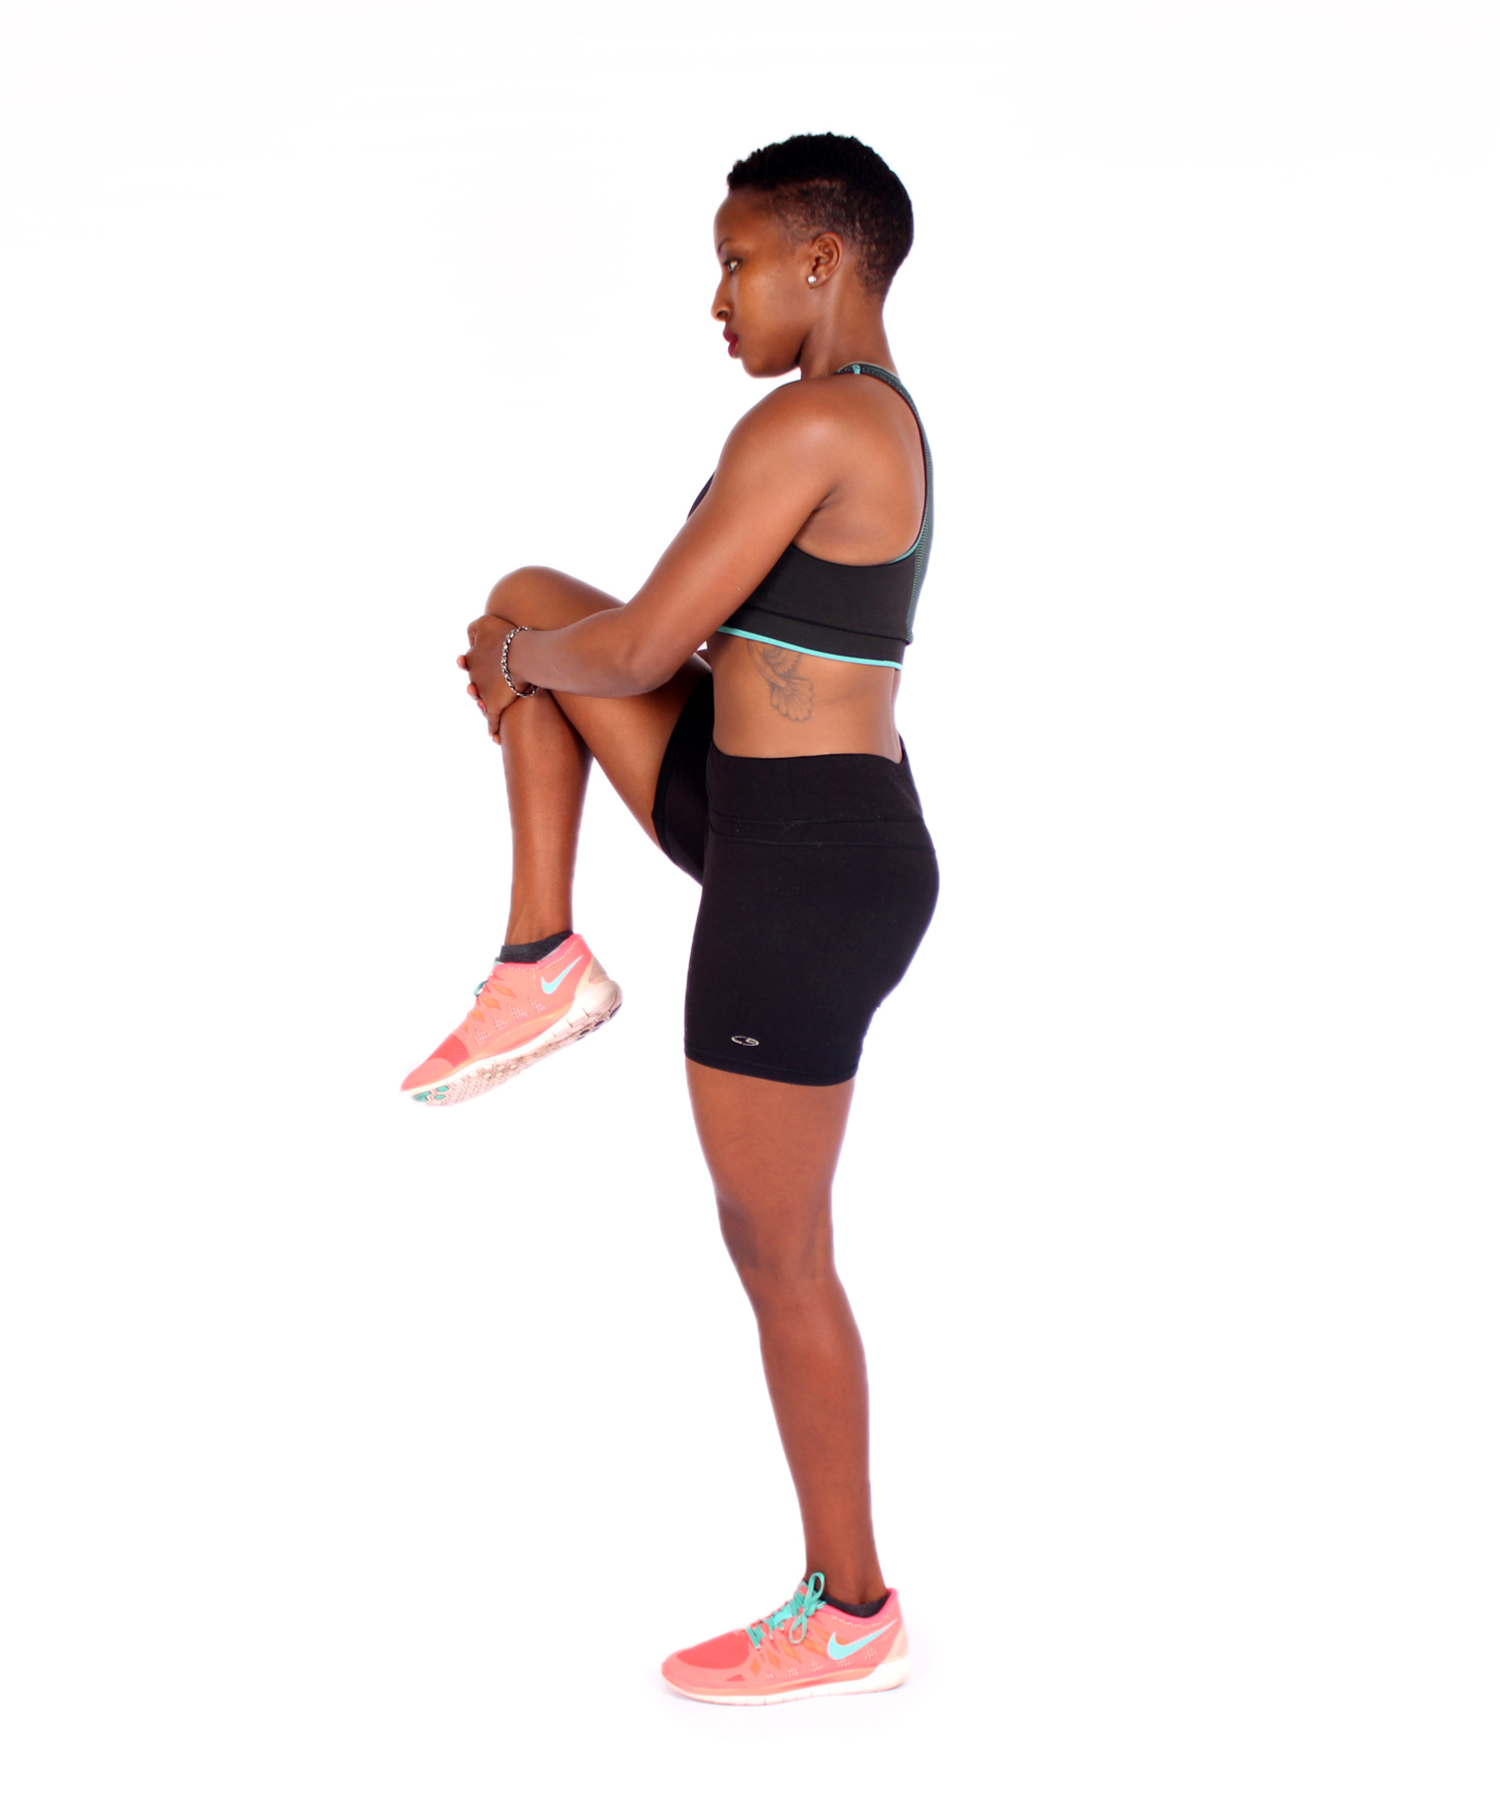 Fit woman stretching legs while standing